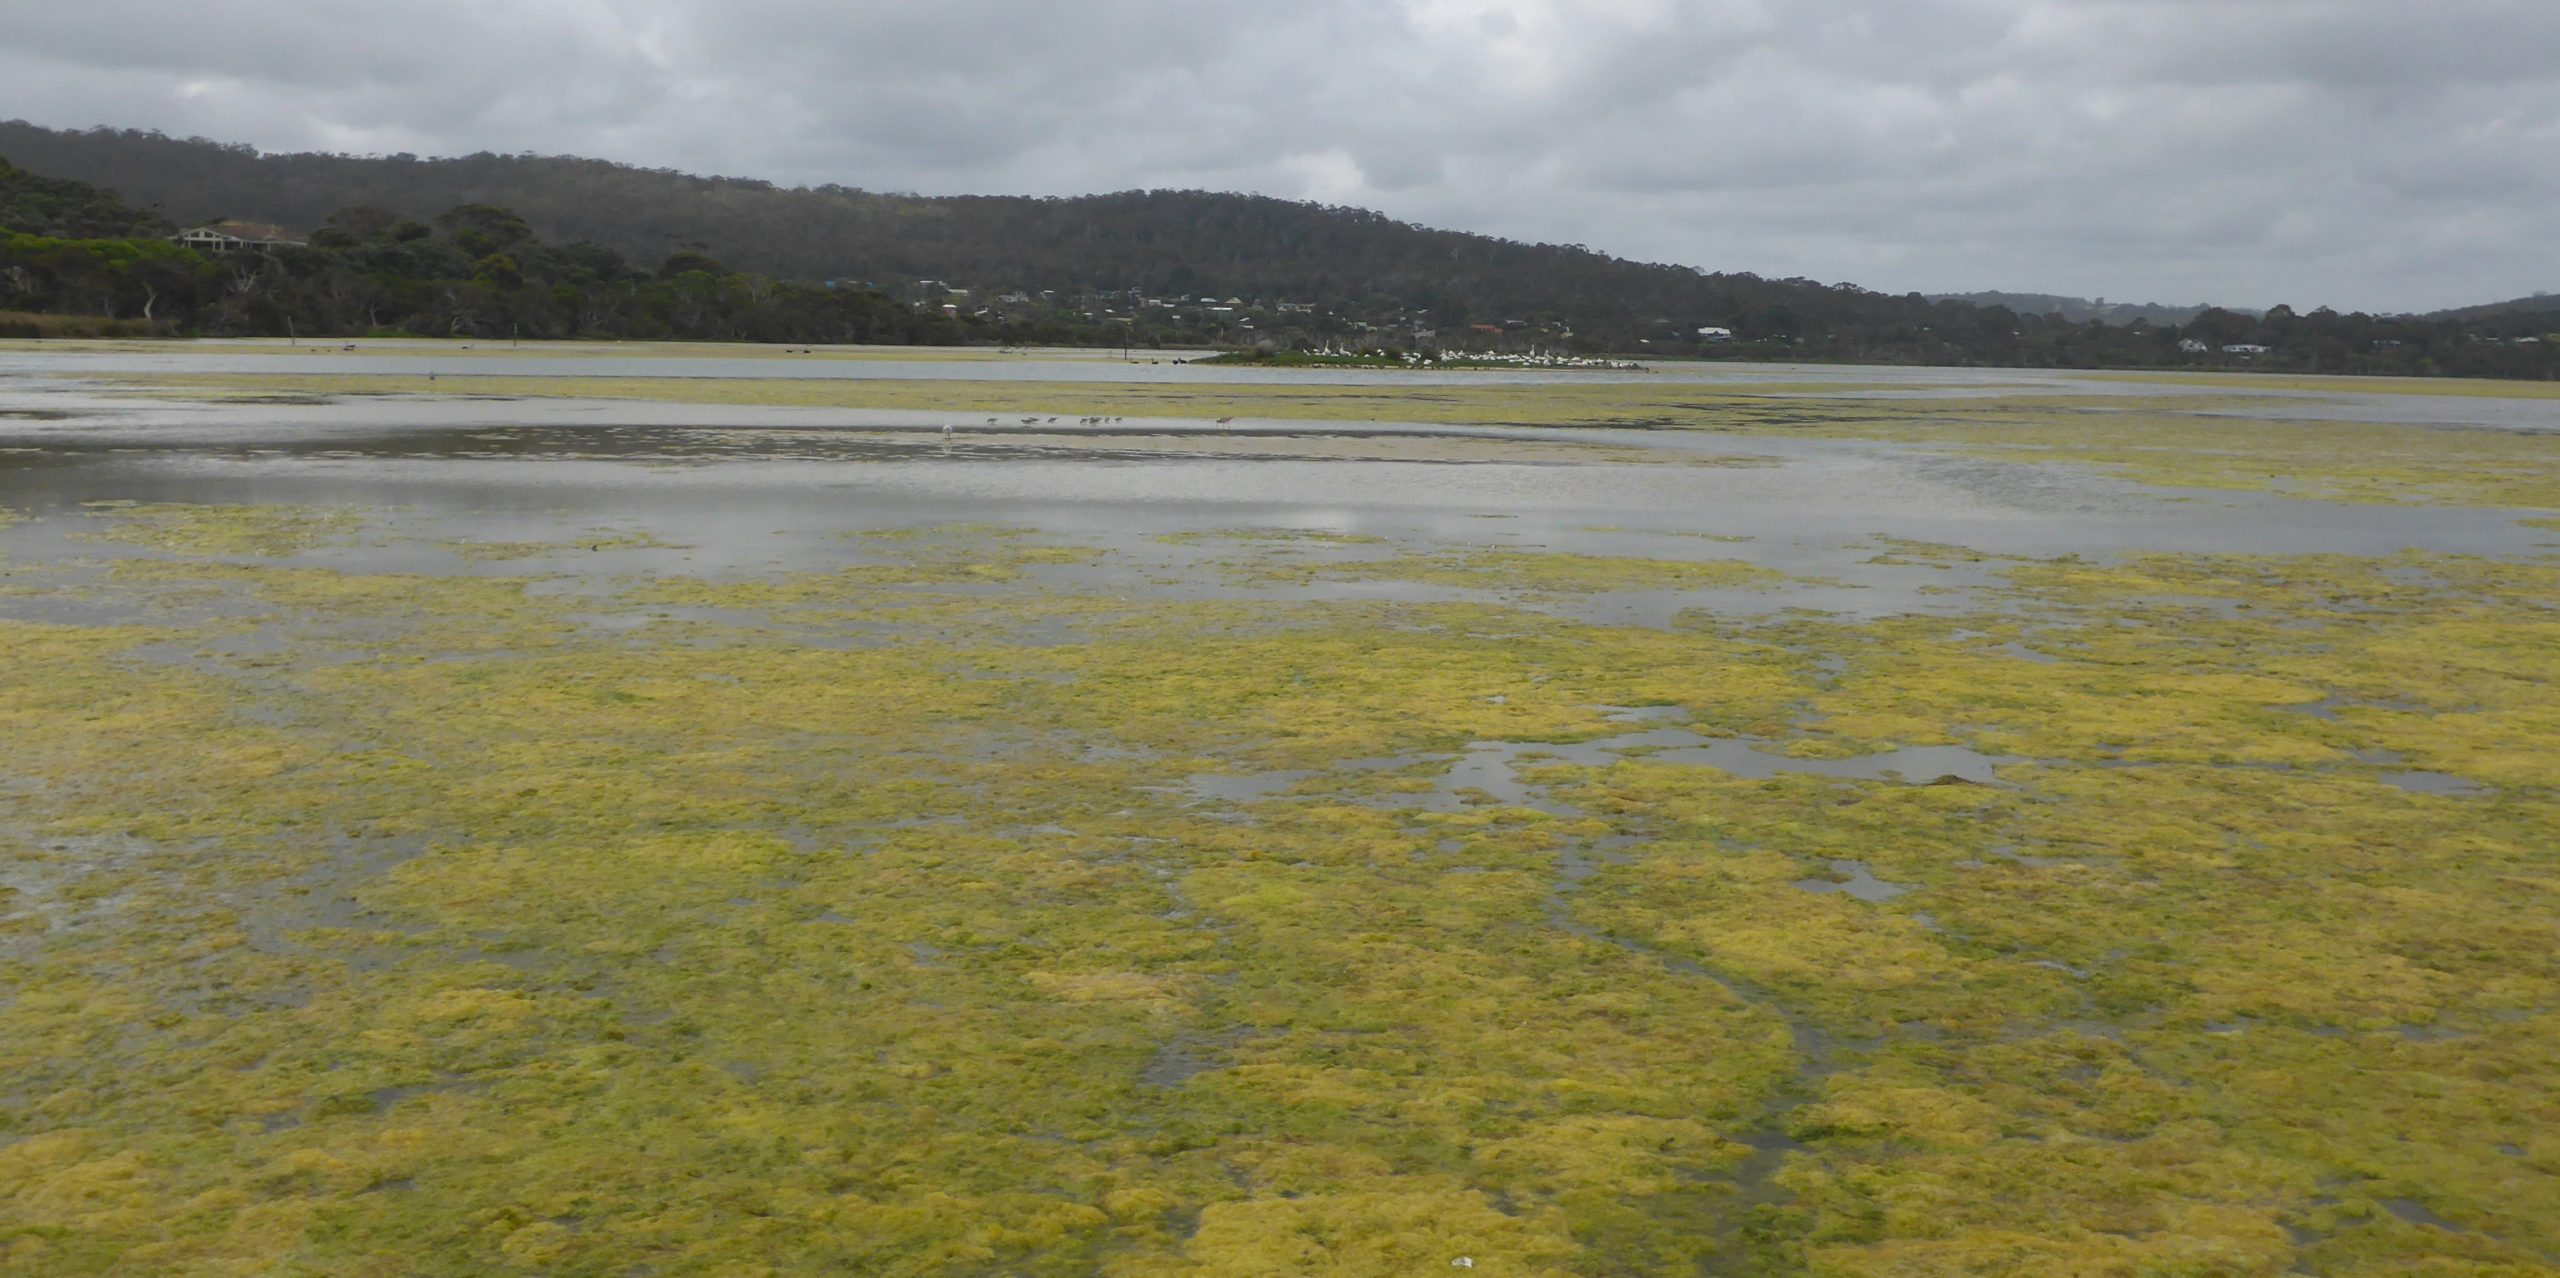 a macroalgae bloom in the Wilson Inlet seen from above the water